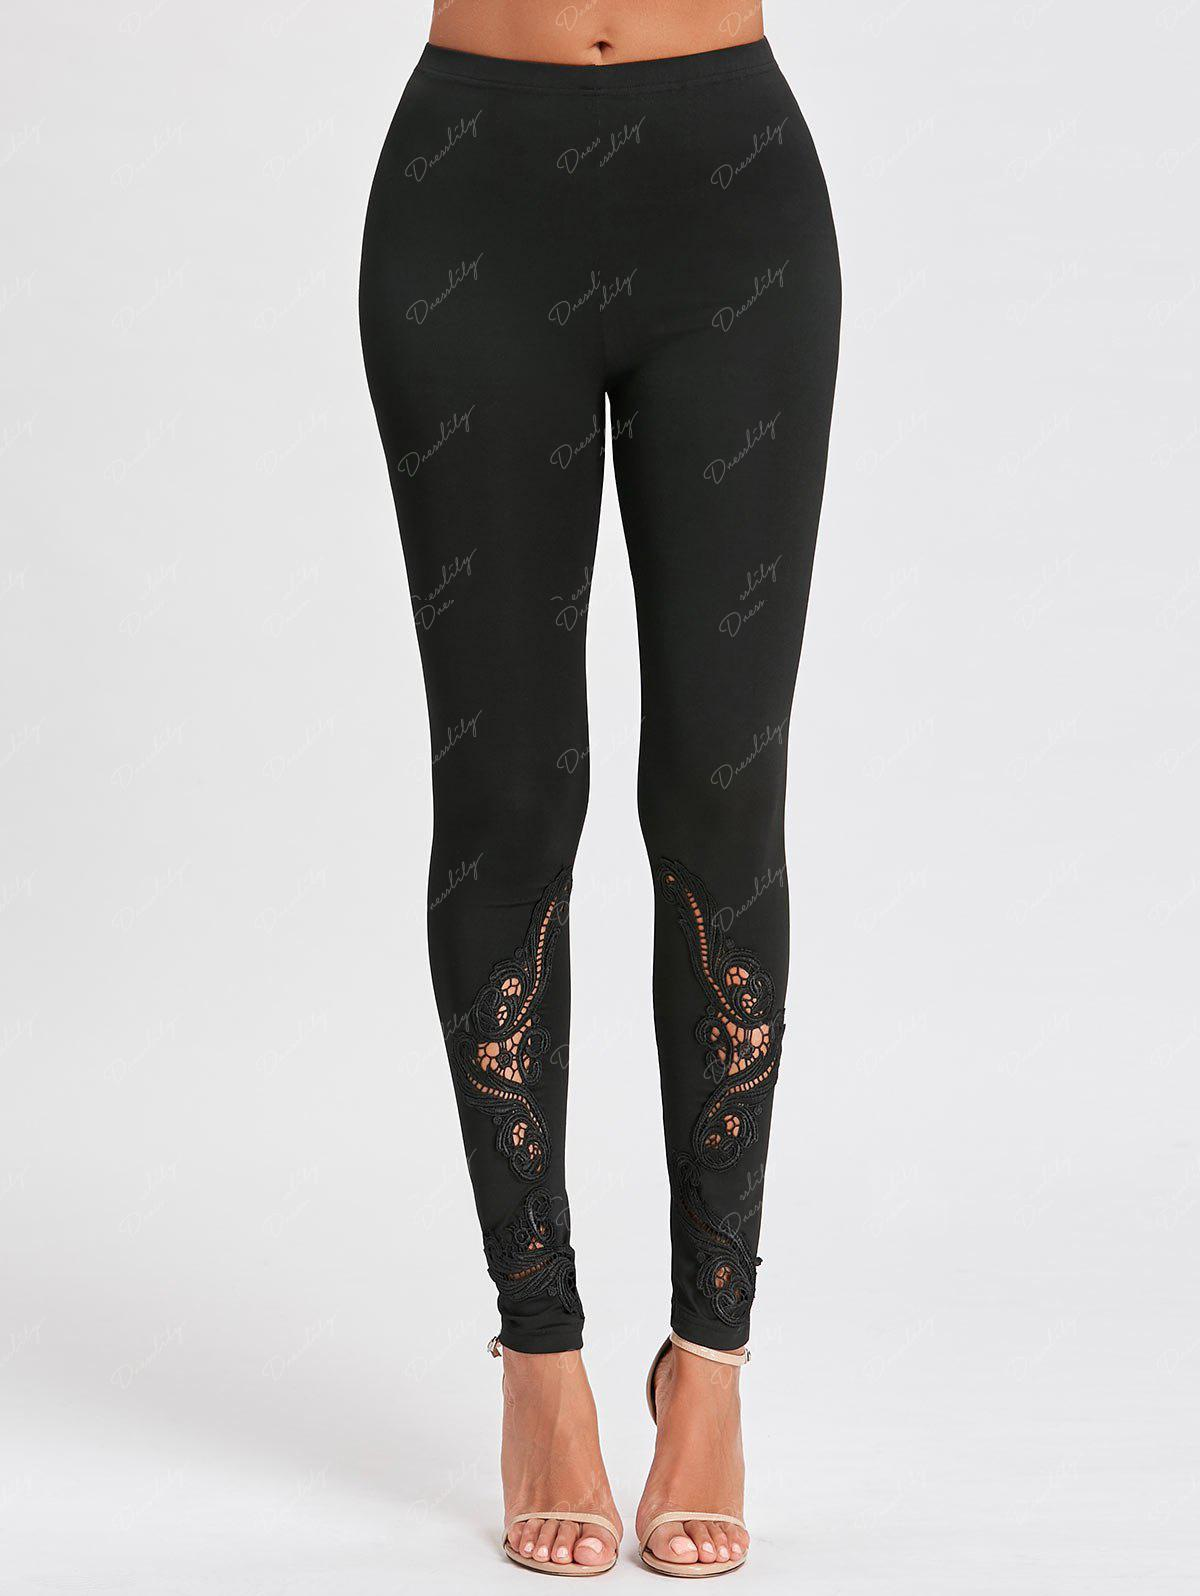 Tight Hollow Out Lace Panel Leggings - BLACK M